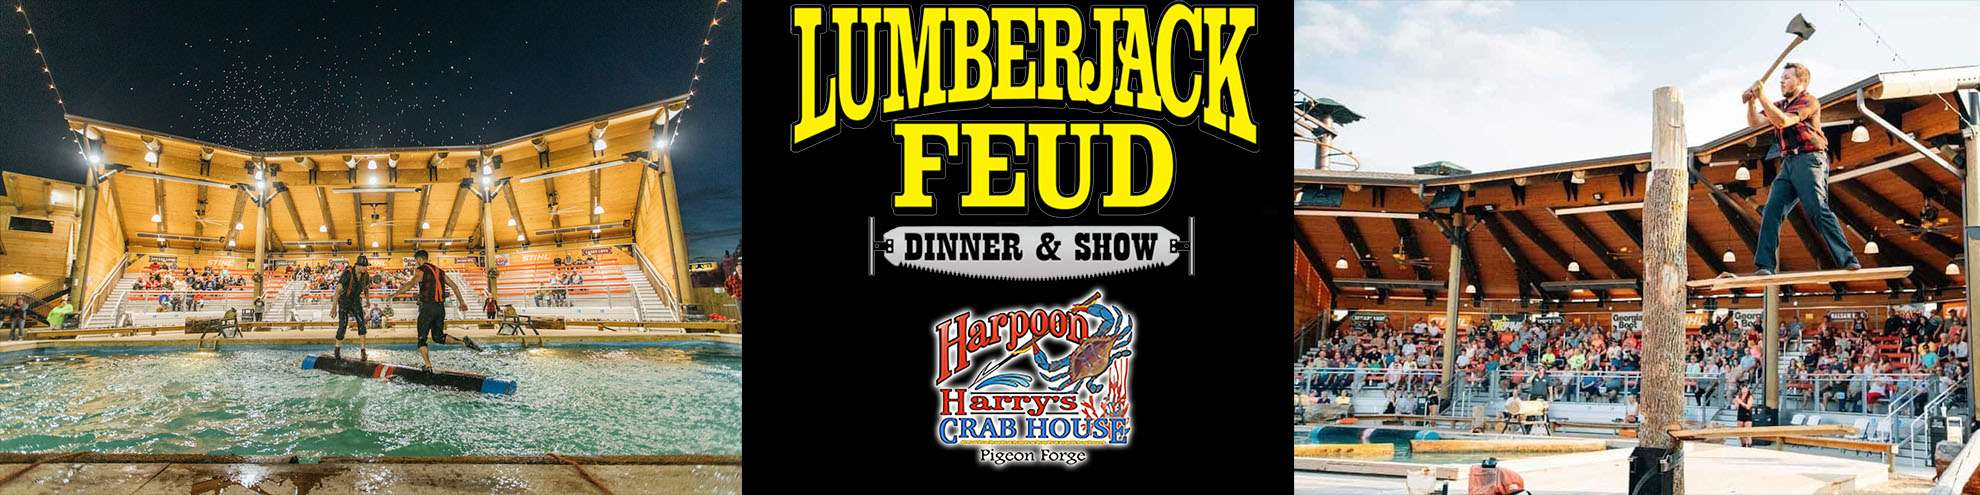 Lumberjack Feud Discount Tickets